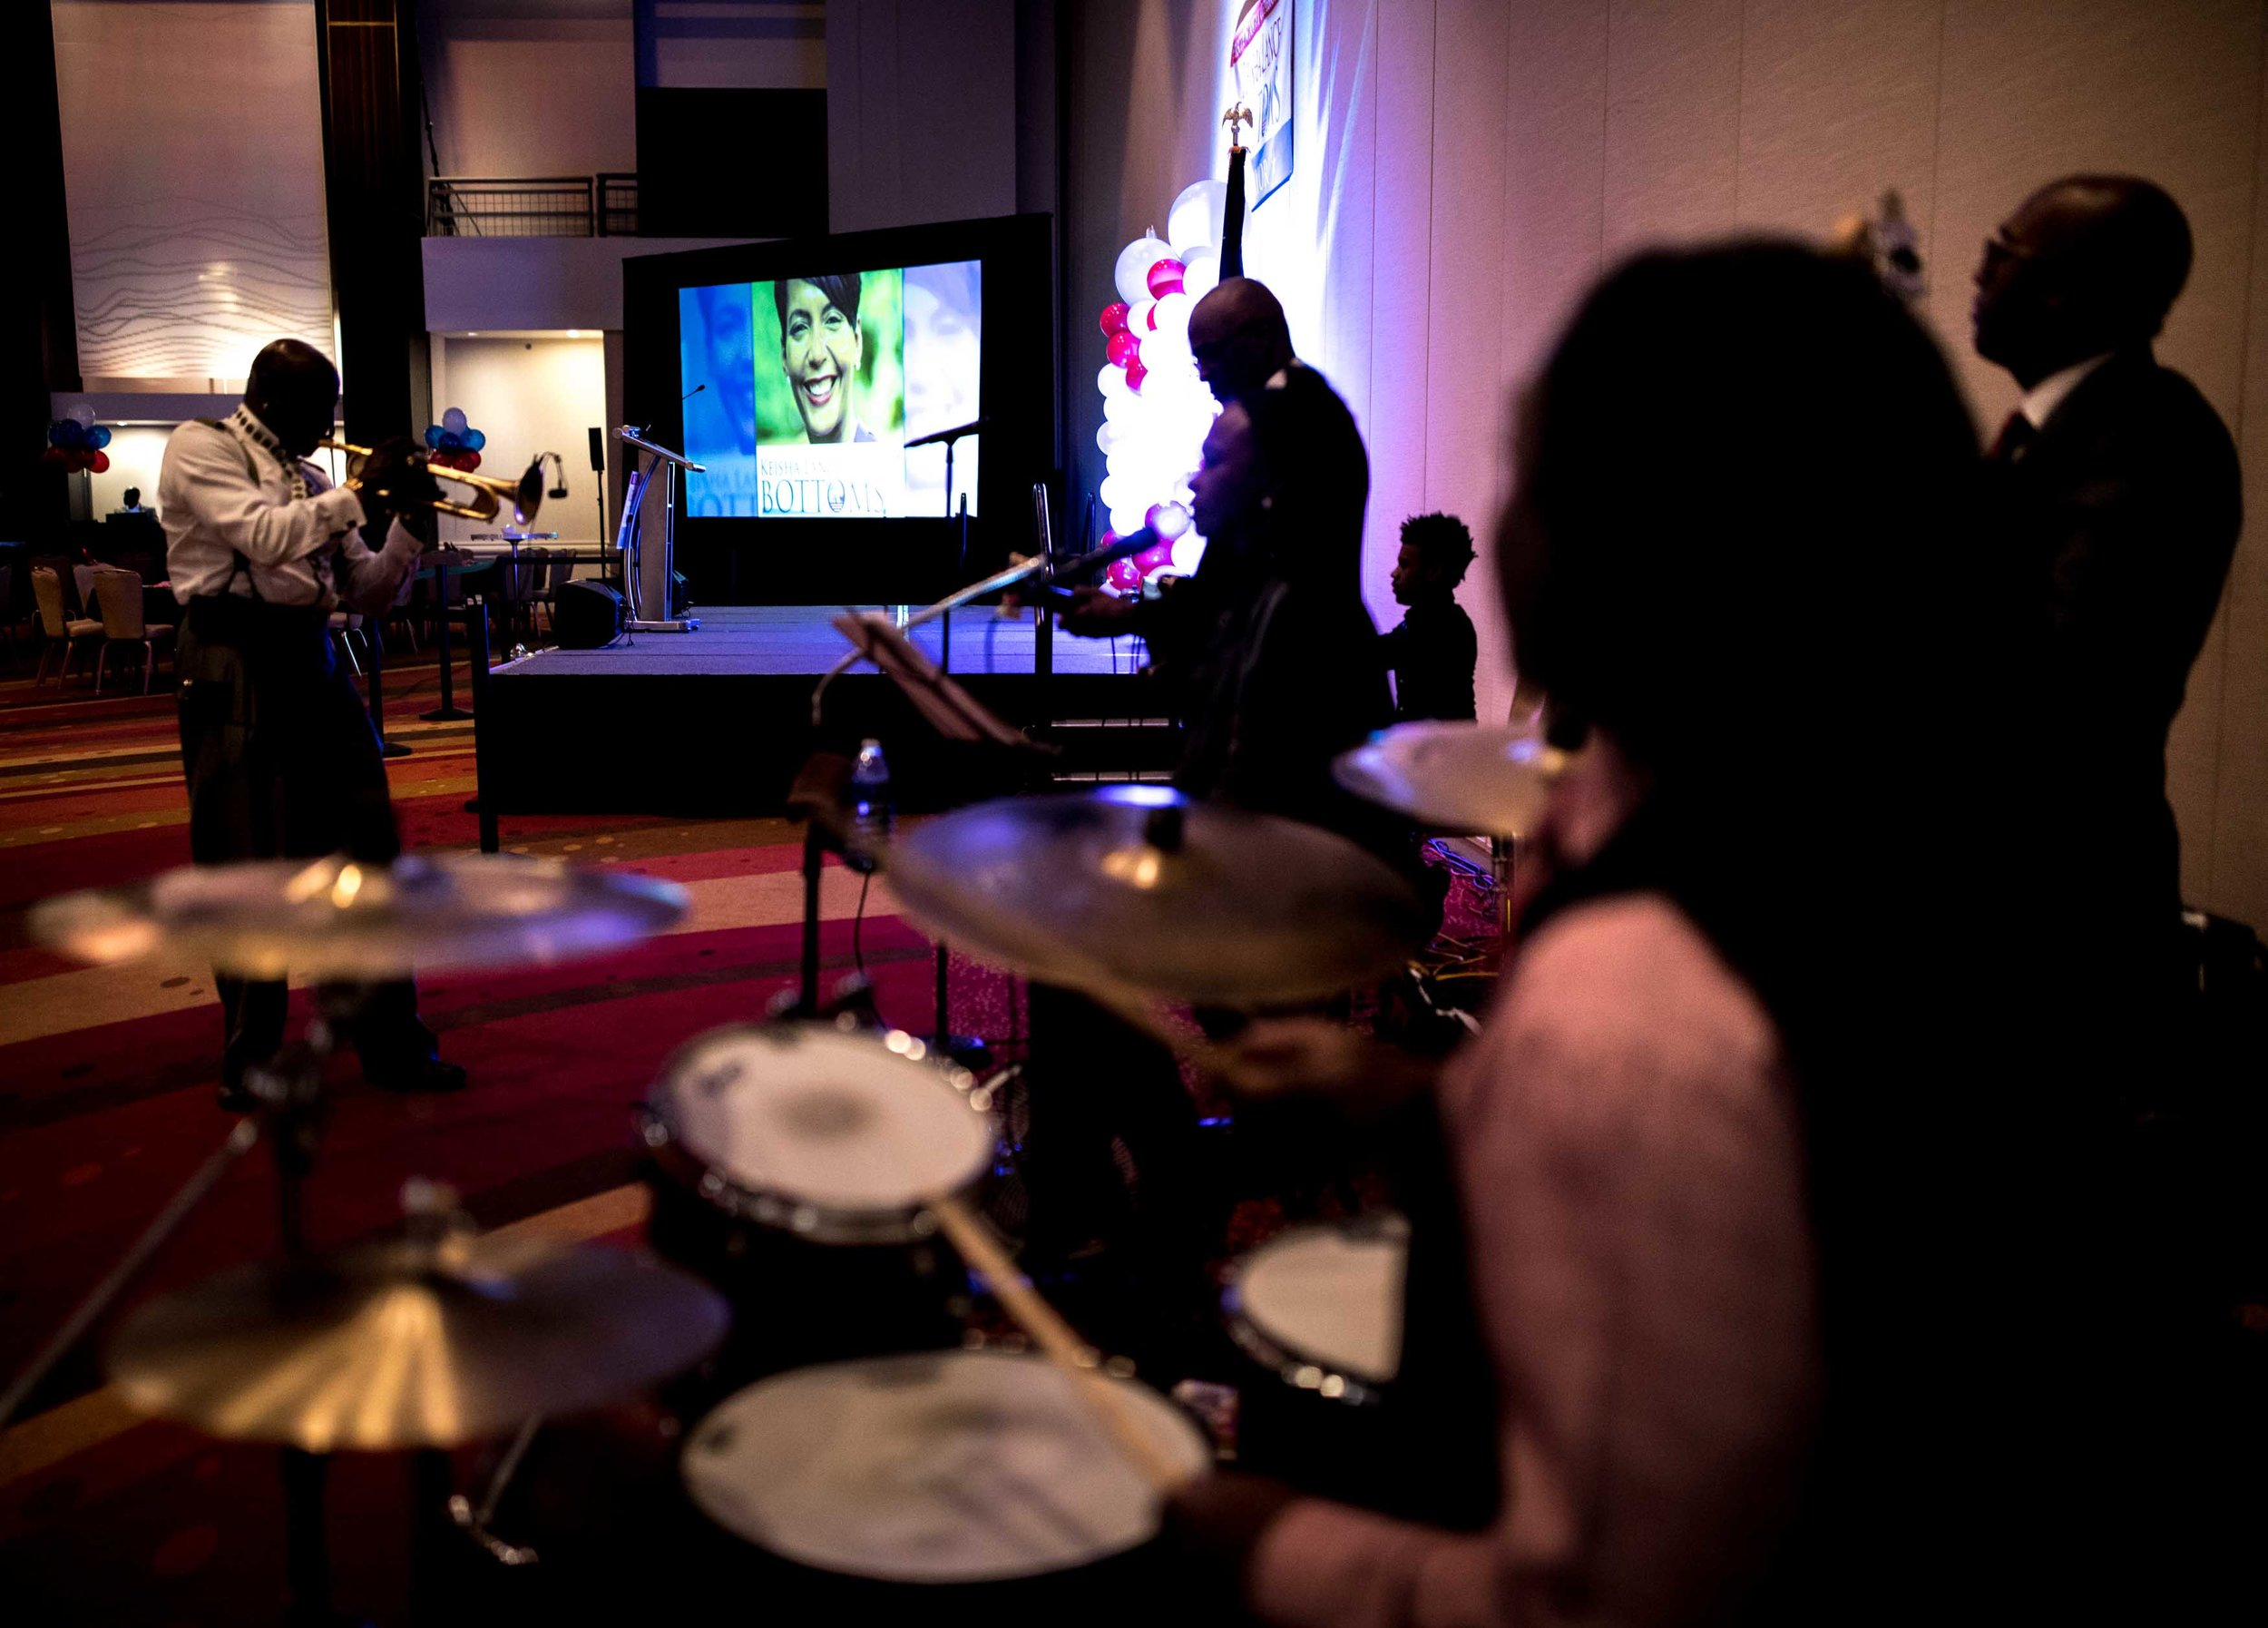 A photo of Keisha Lance Bottoms is displayed on a screen as a band warms up before an election party.